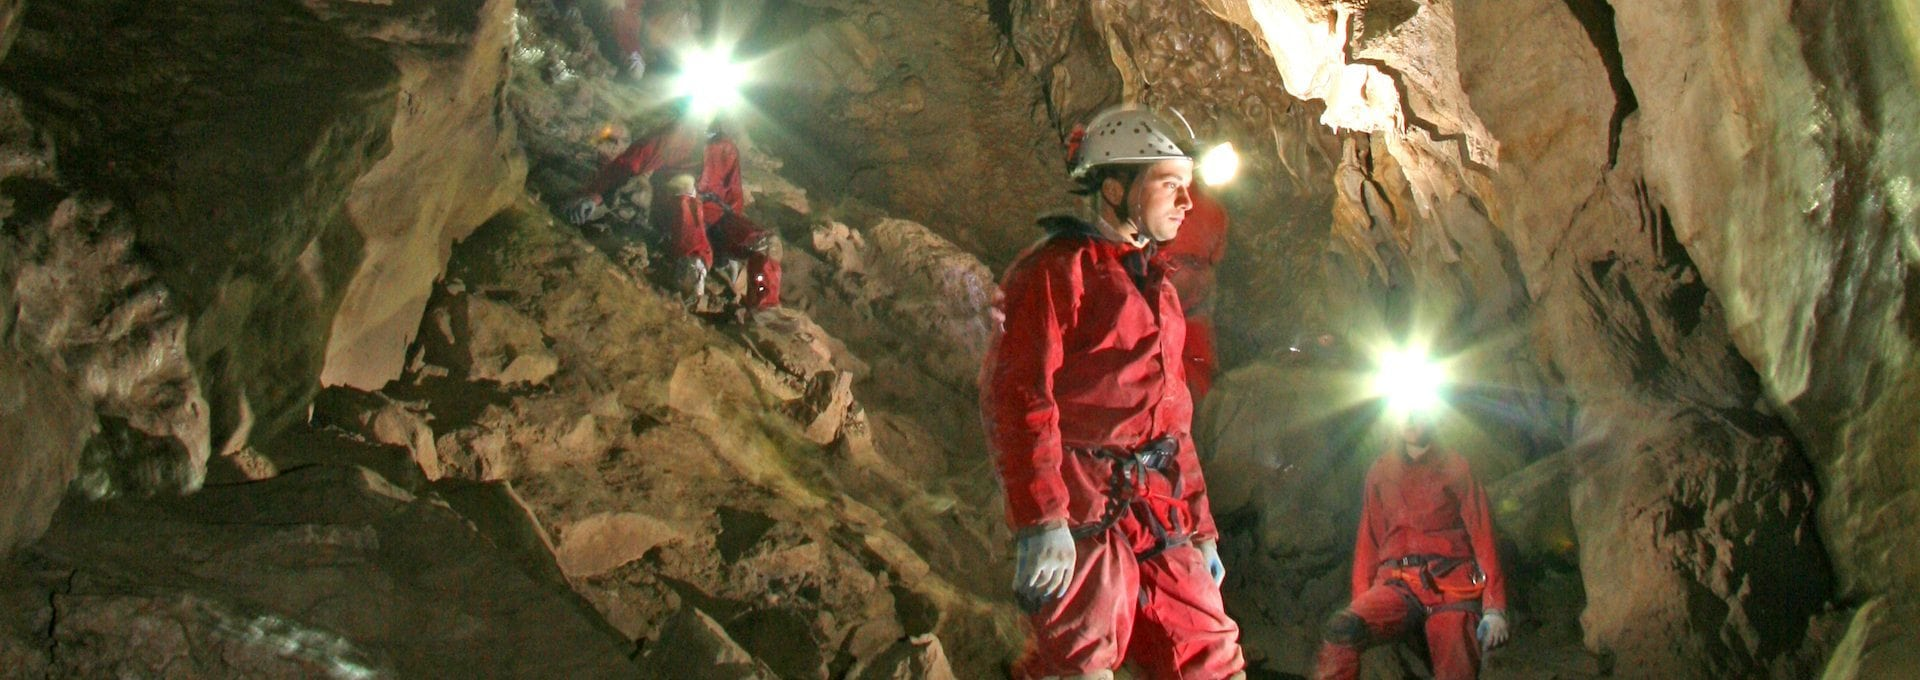 Canmore Caves Adventure Tour